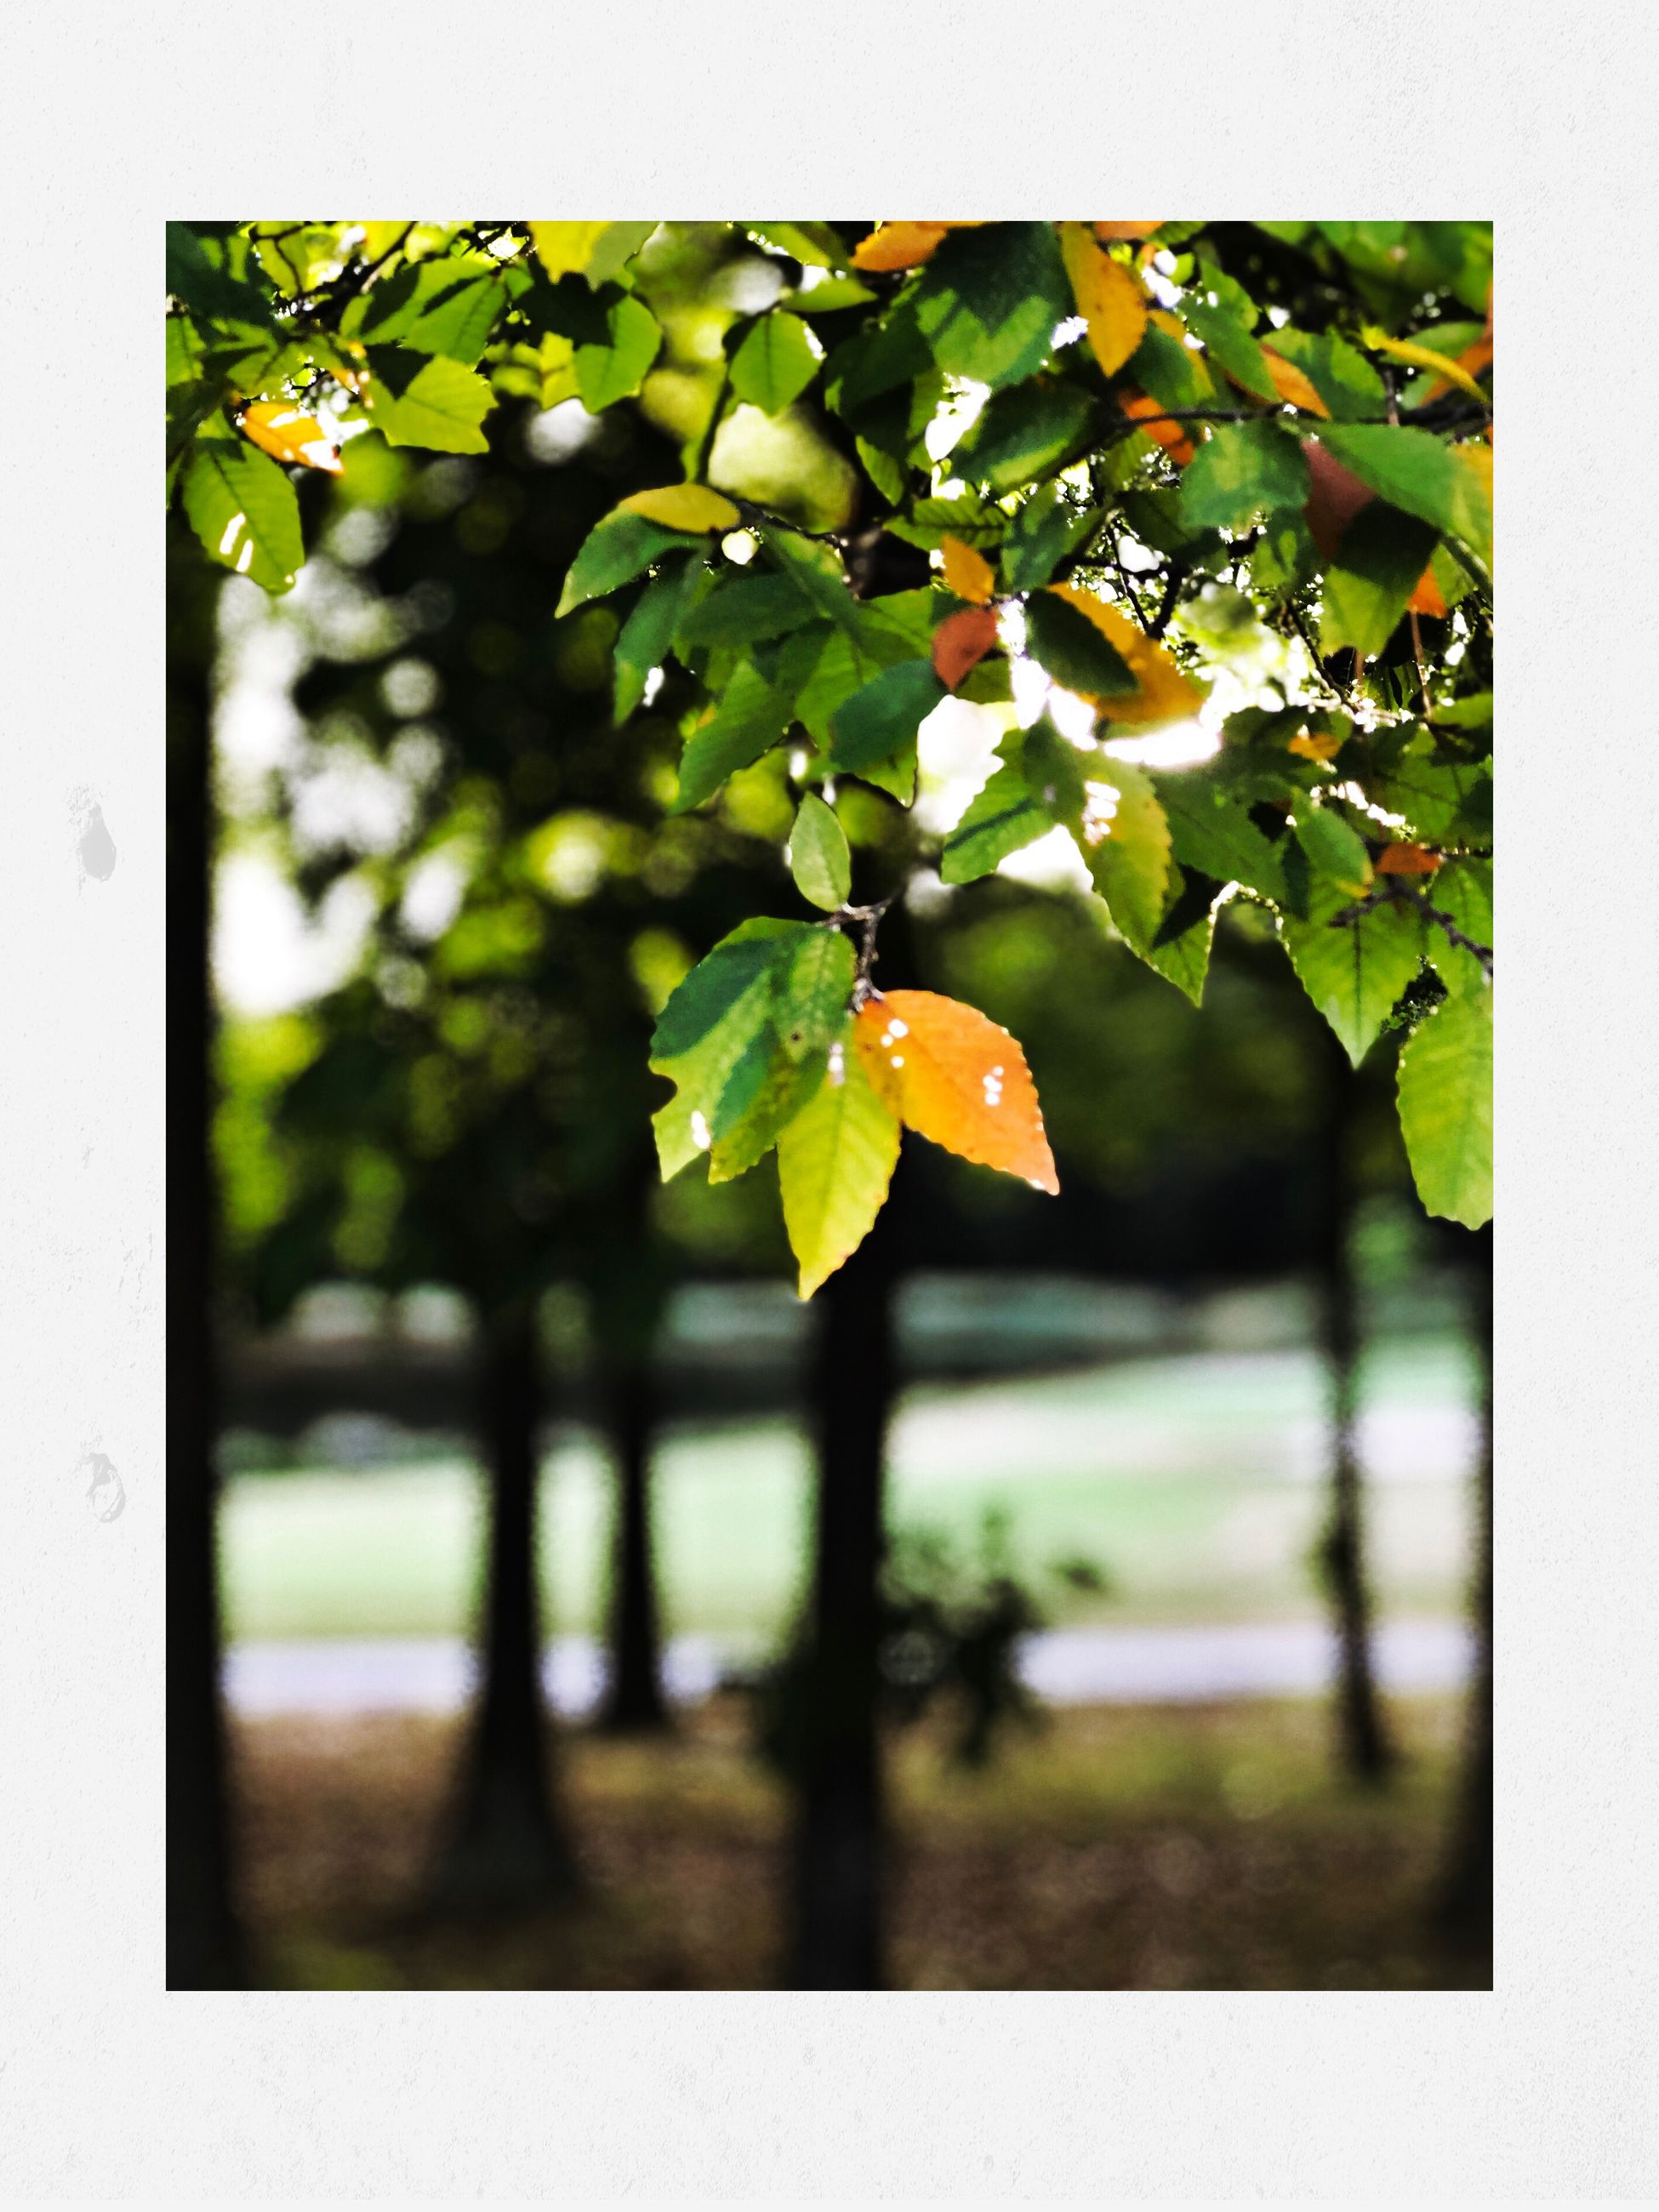 growth, nature, day, leaf, close-up, focus on foreground, tree, beauty in nature, outdoors, no people, freshness, fruit, water, fragility